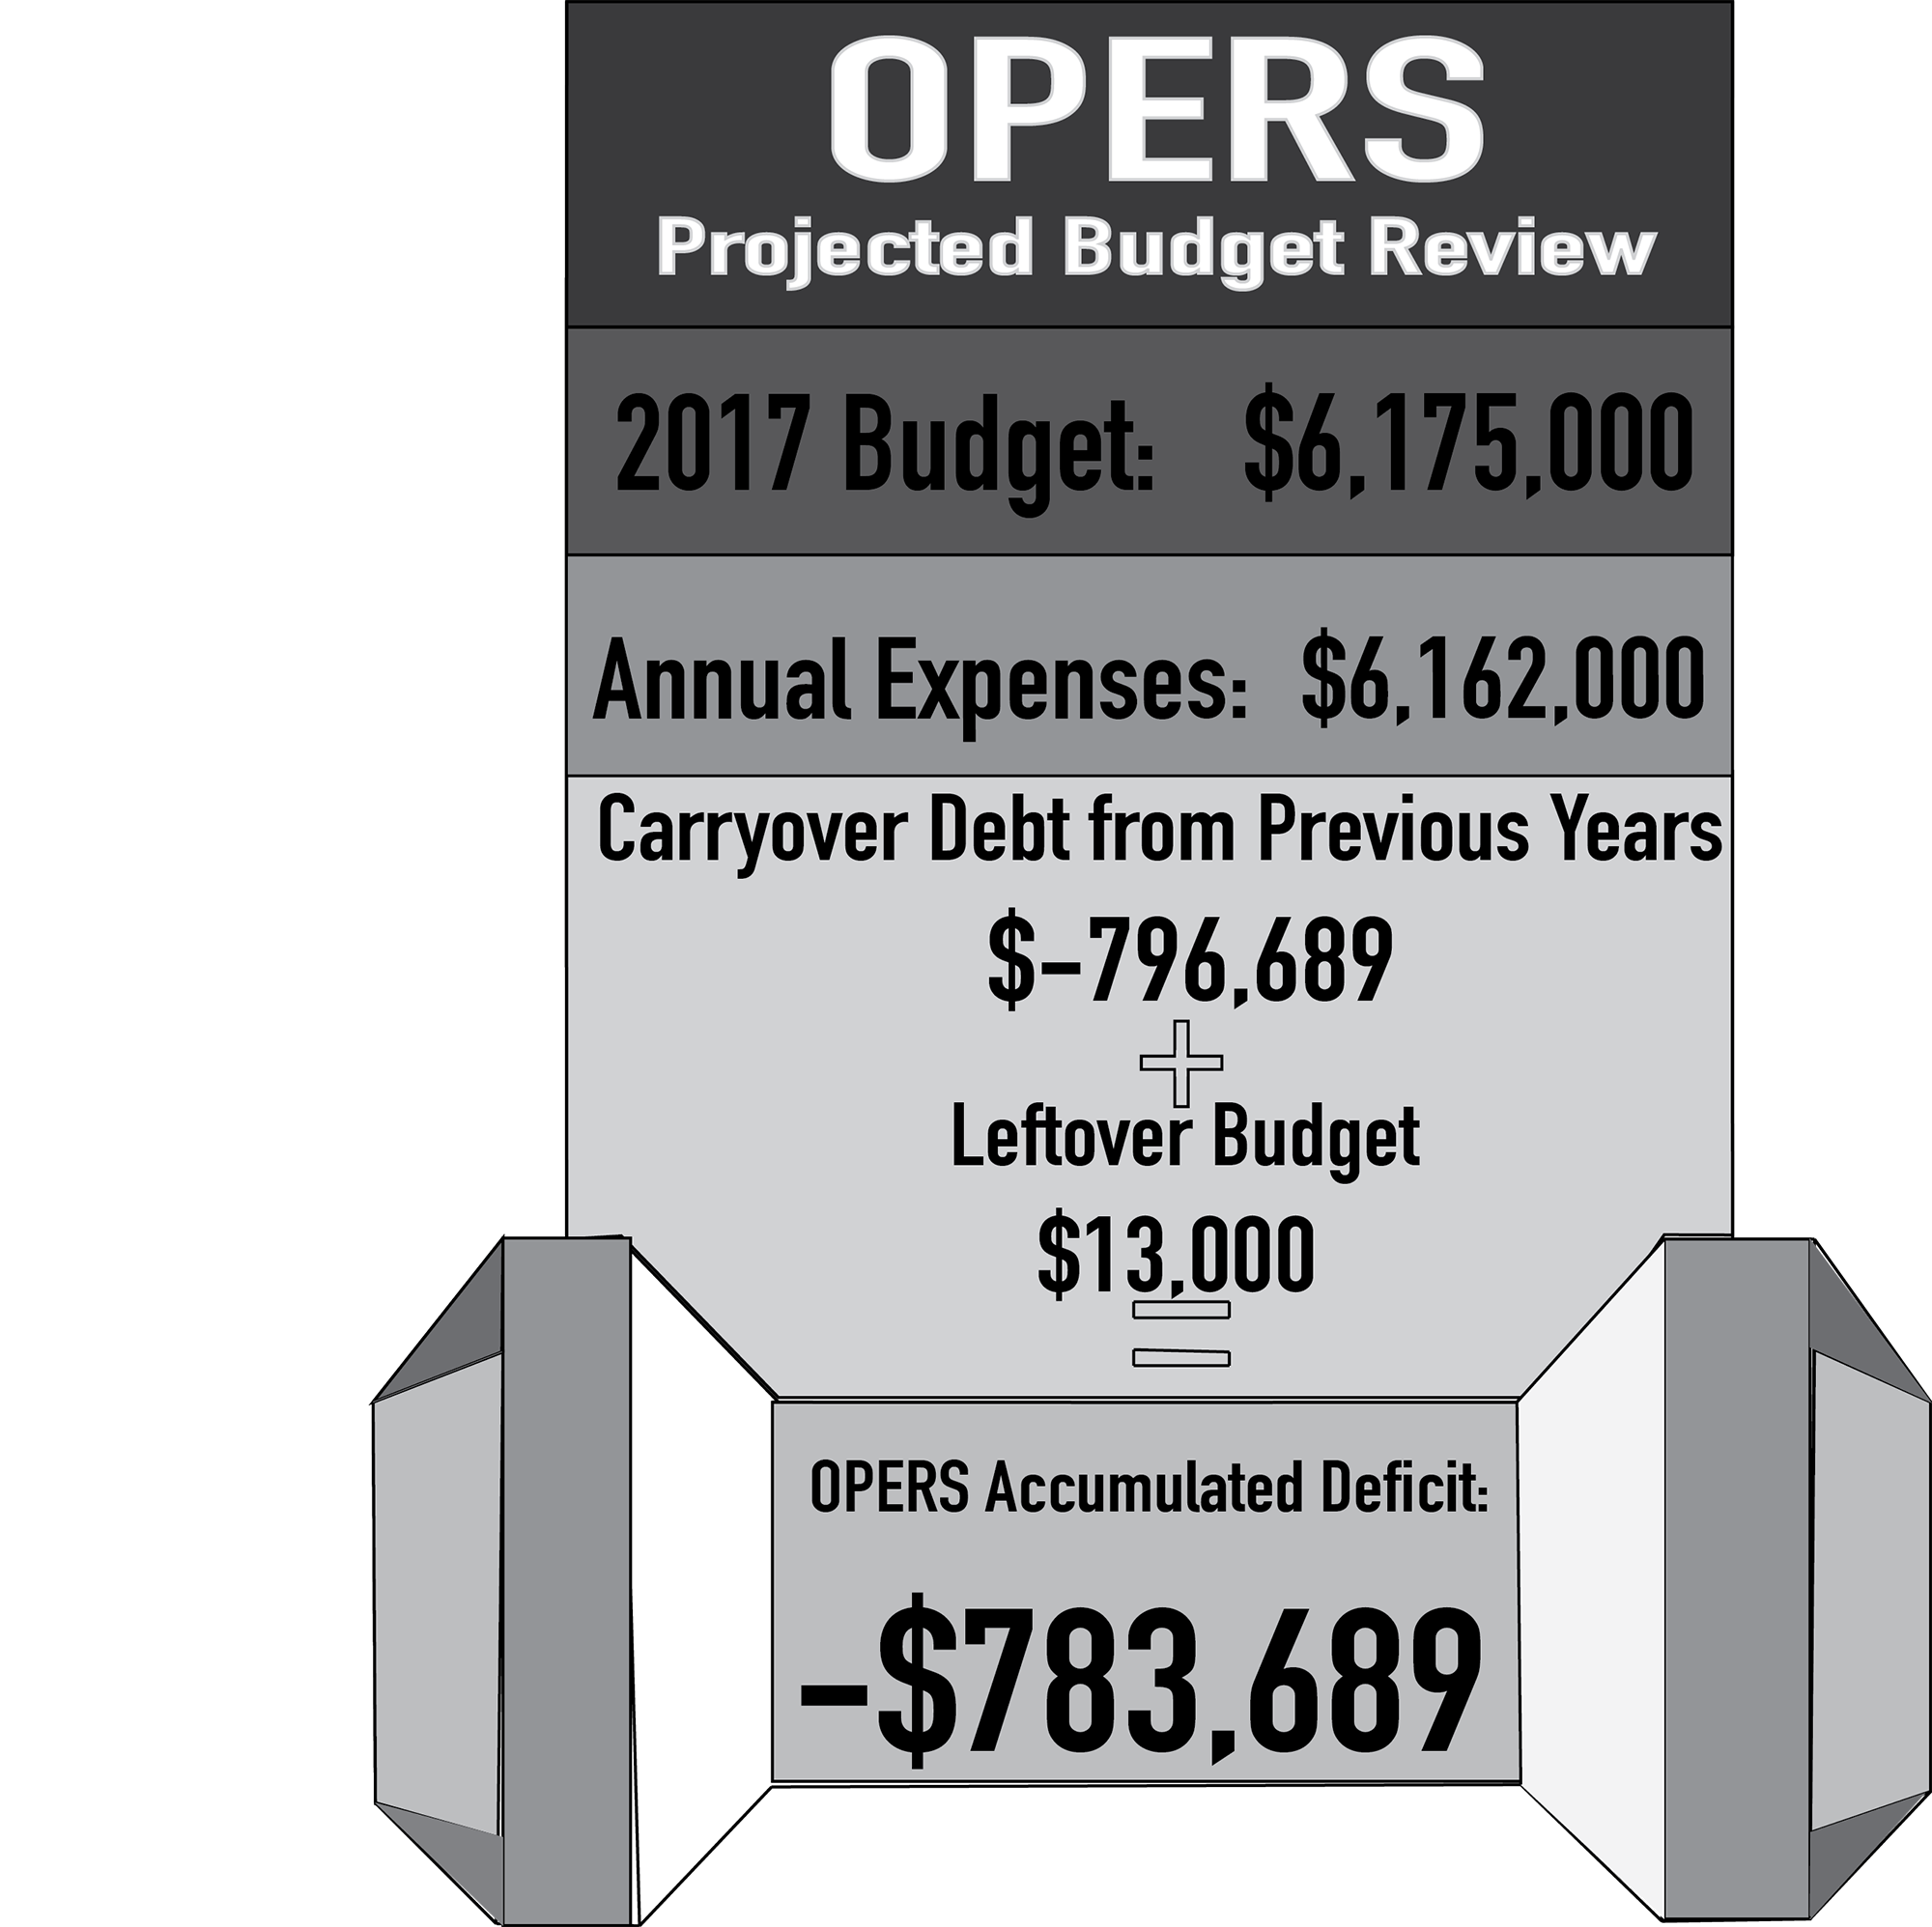 OPERS Budget in Question